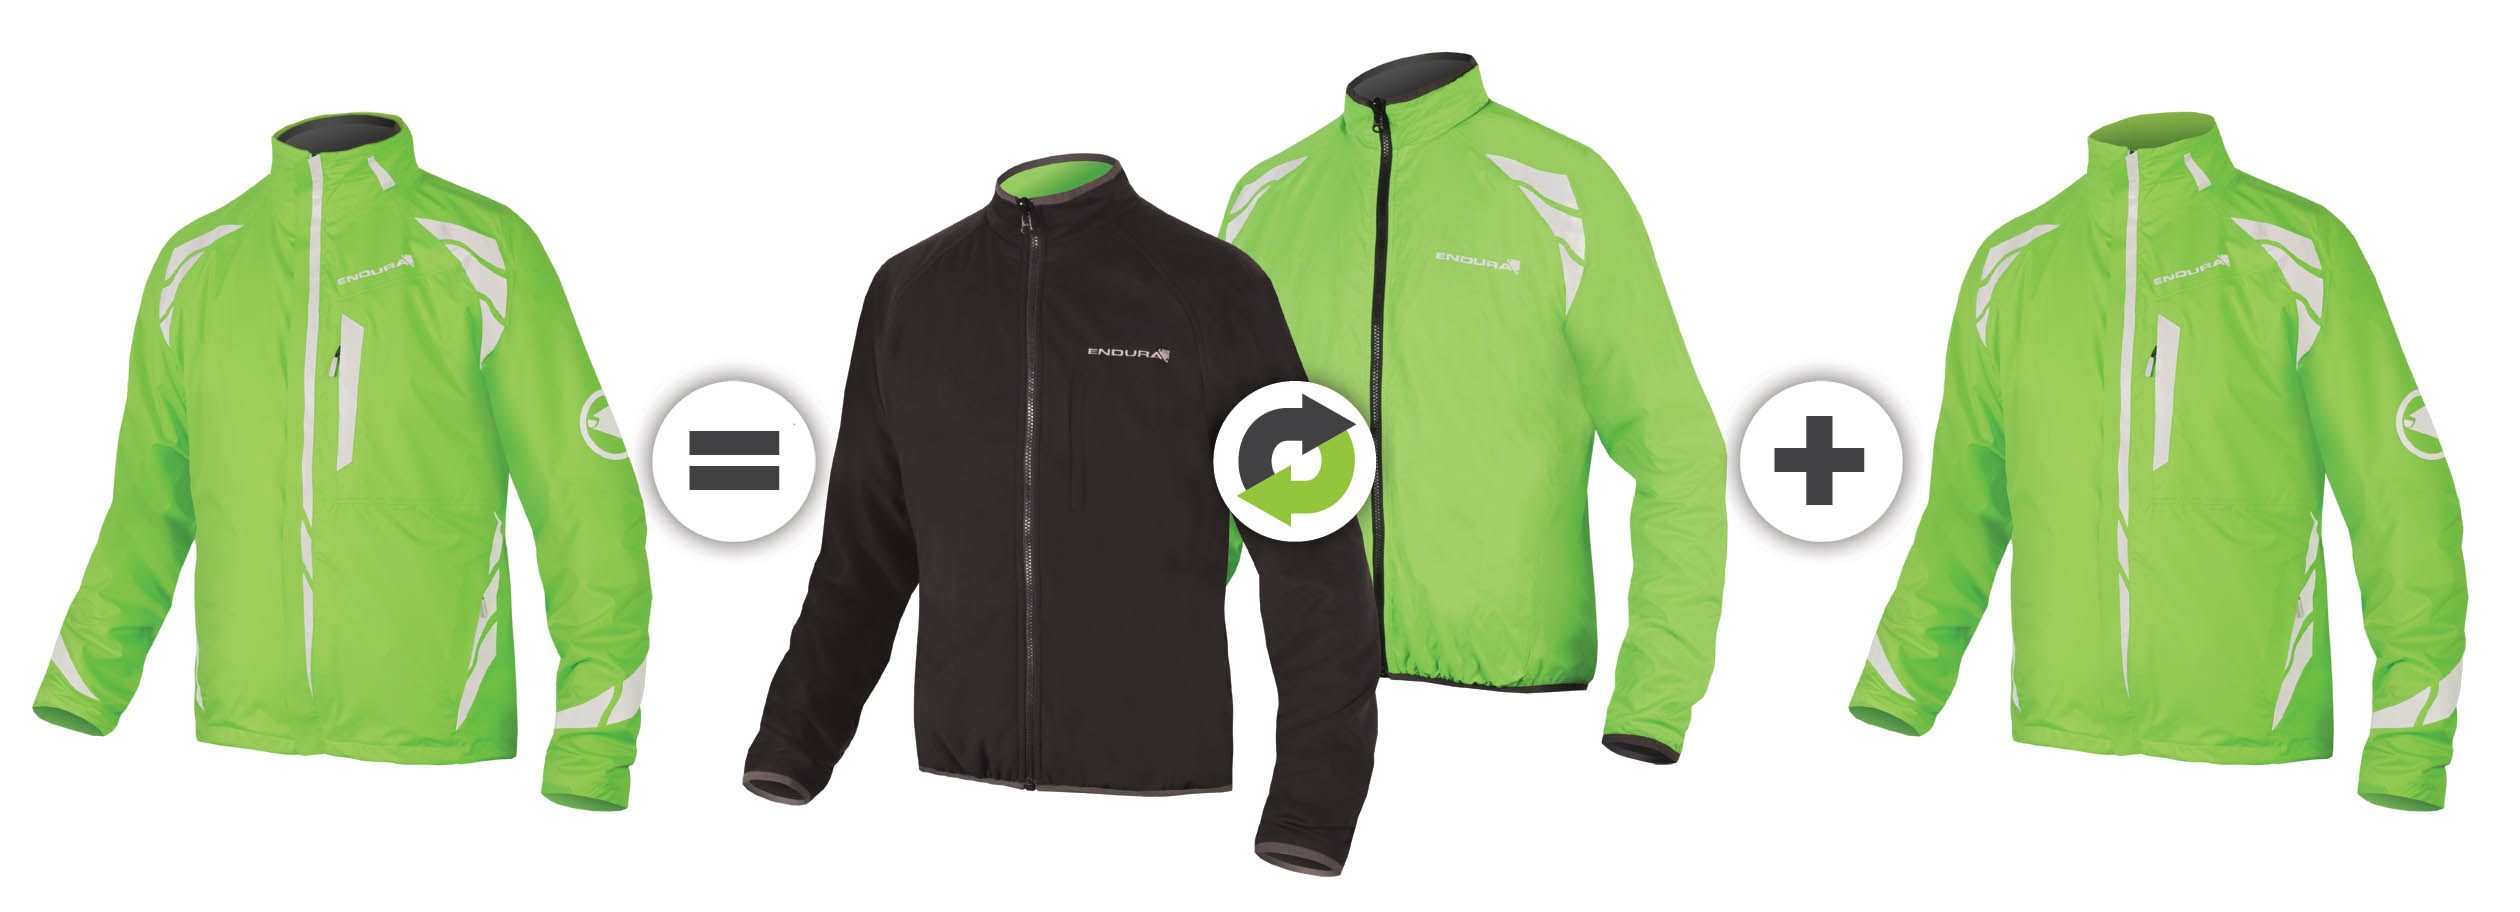 Luminite 4in1 Jacket - an all-weather solution